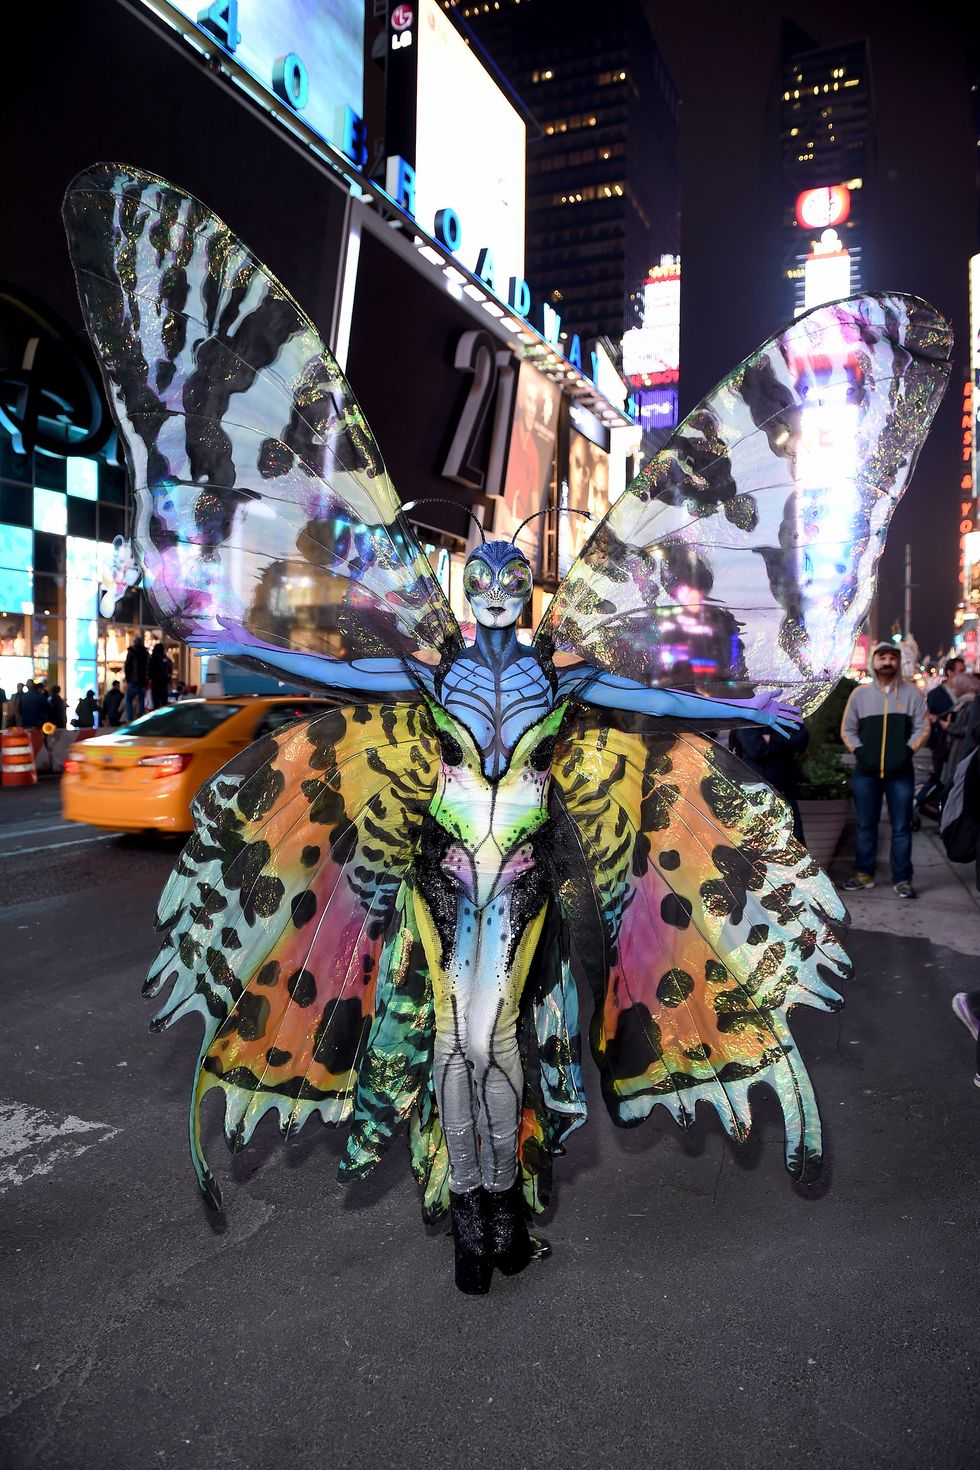 Heidi Klum as a multicolored butterfly was a work of art. She's wear prosthetic makeup, with bug eyes, giant translucent wings and a colorful bodysuit.